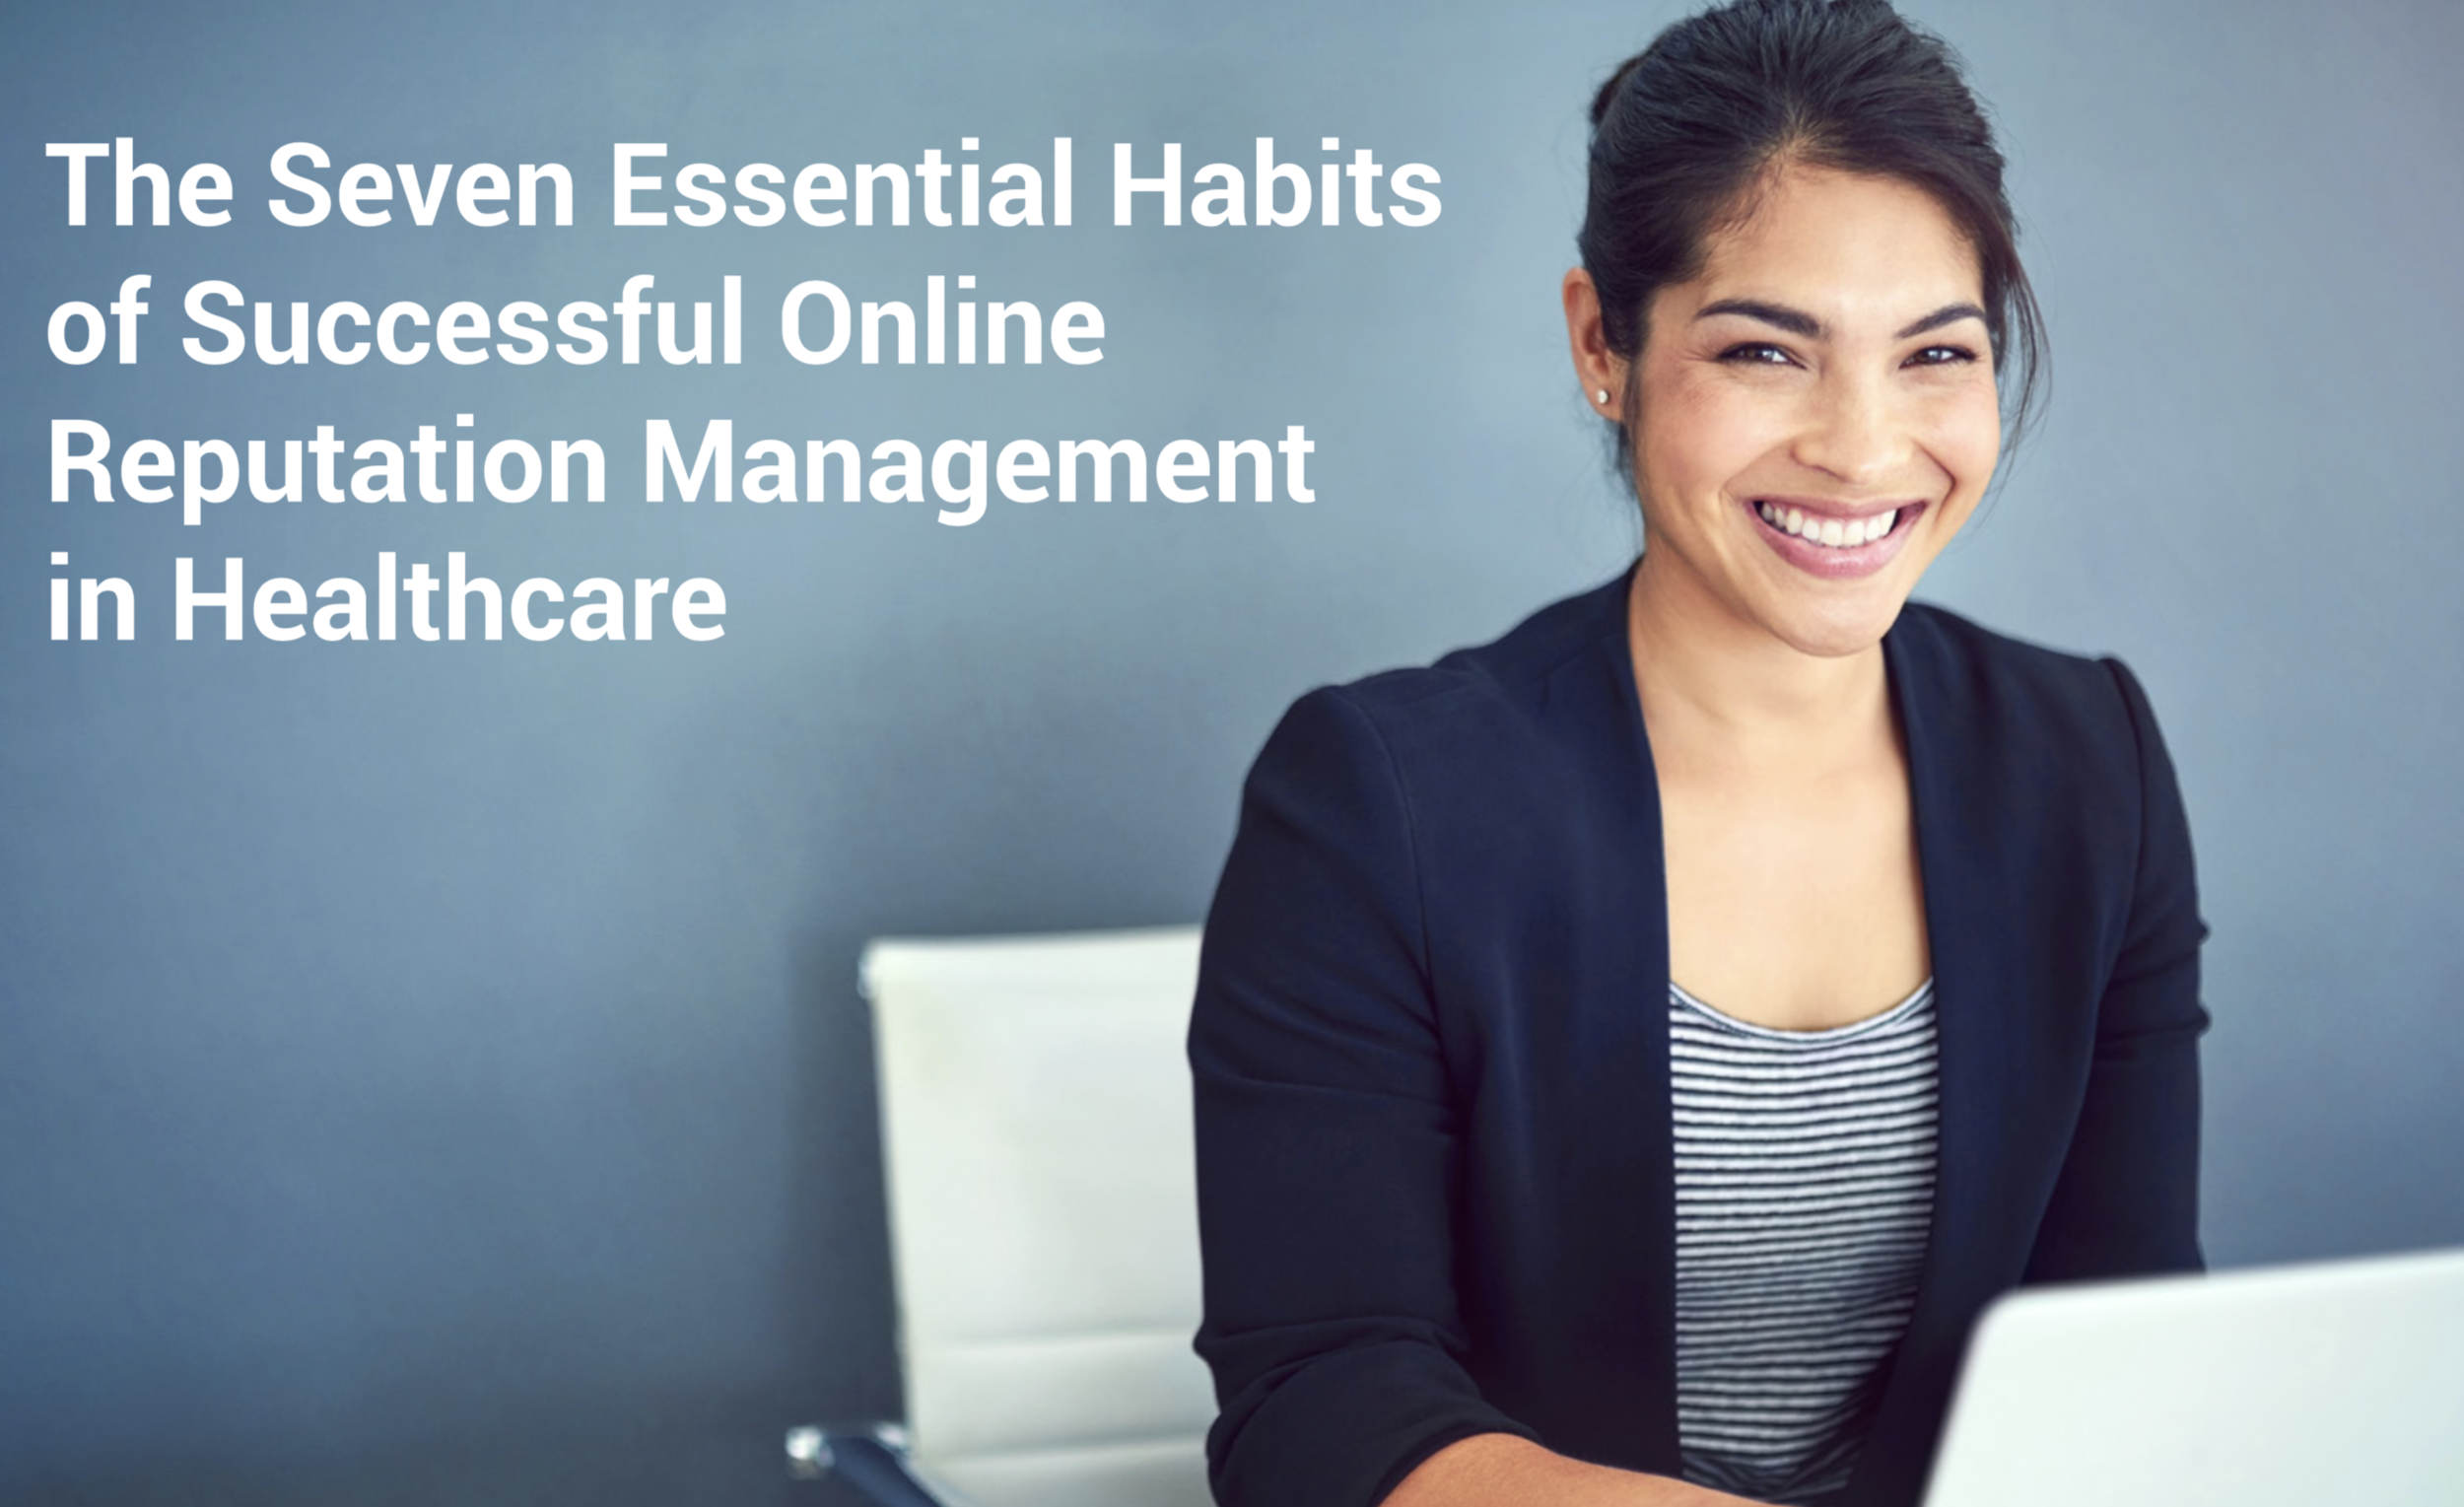 The Seven Essential Habits of Successful Online Reputation Management in Healthcare.